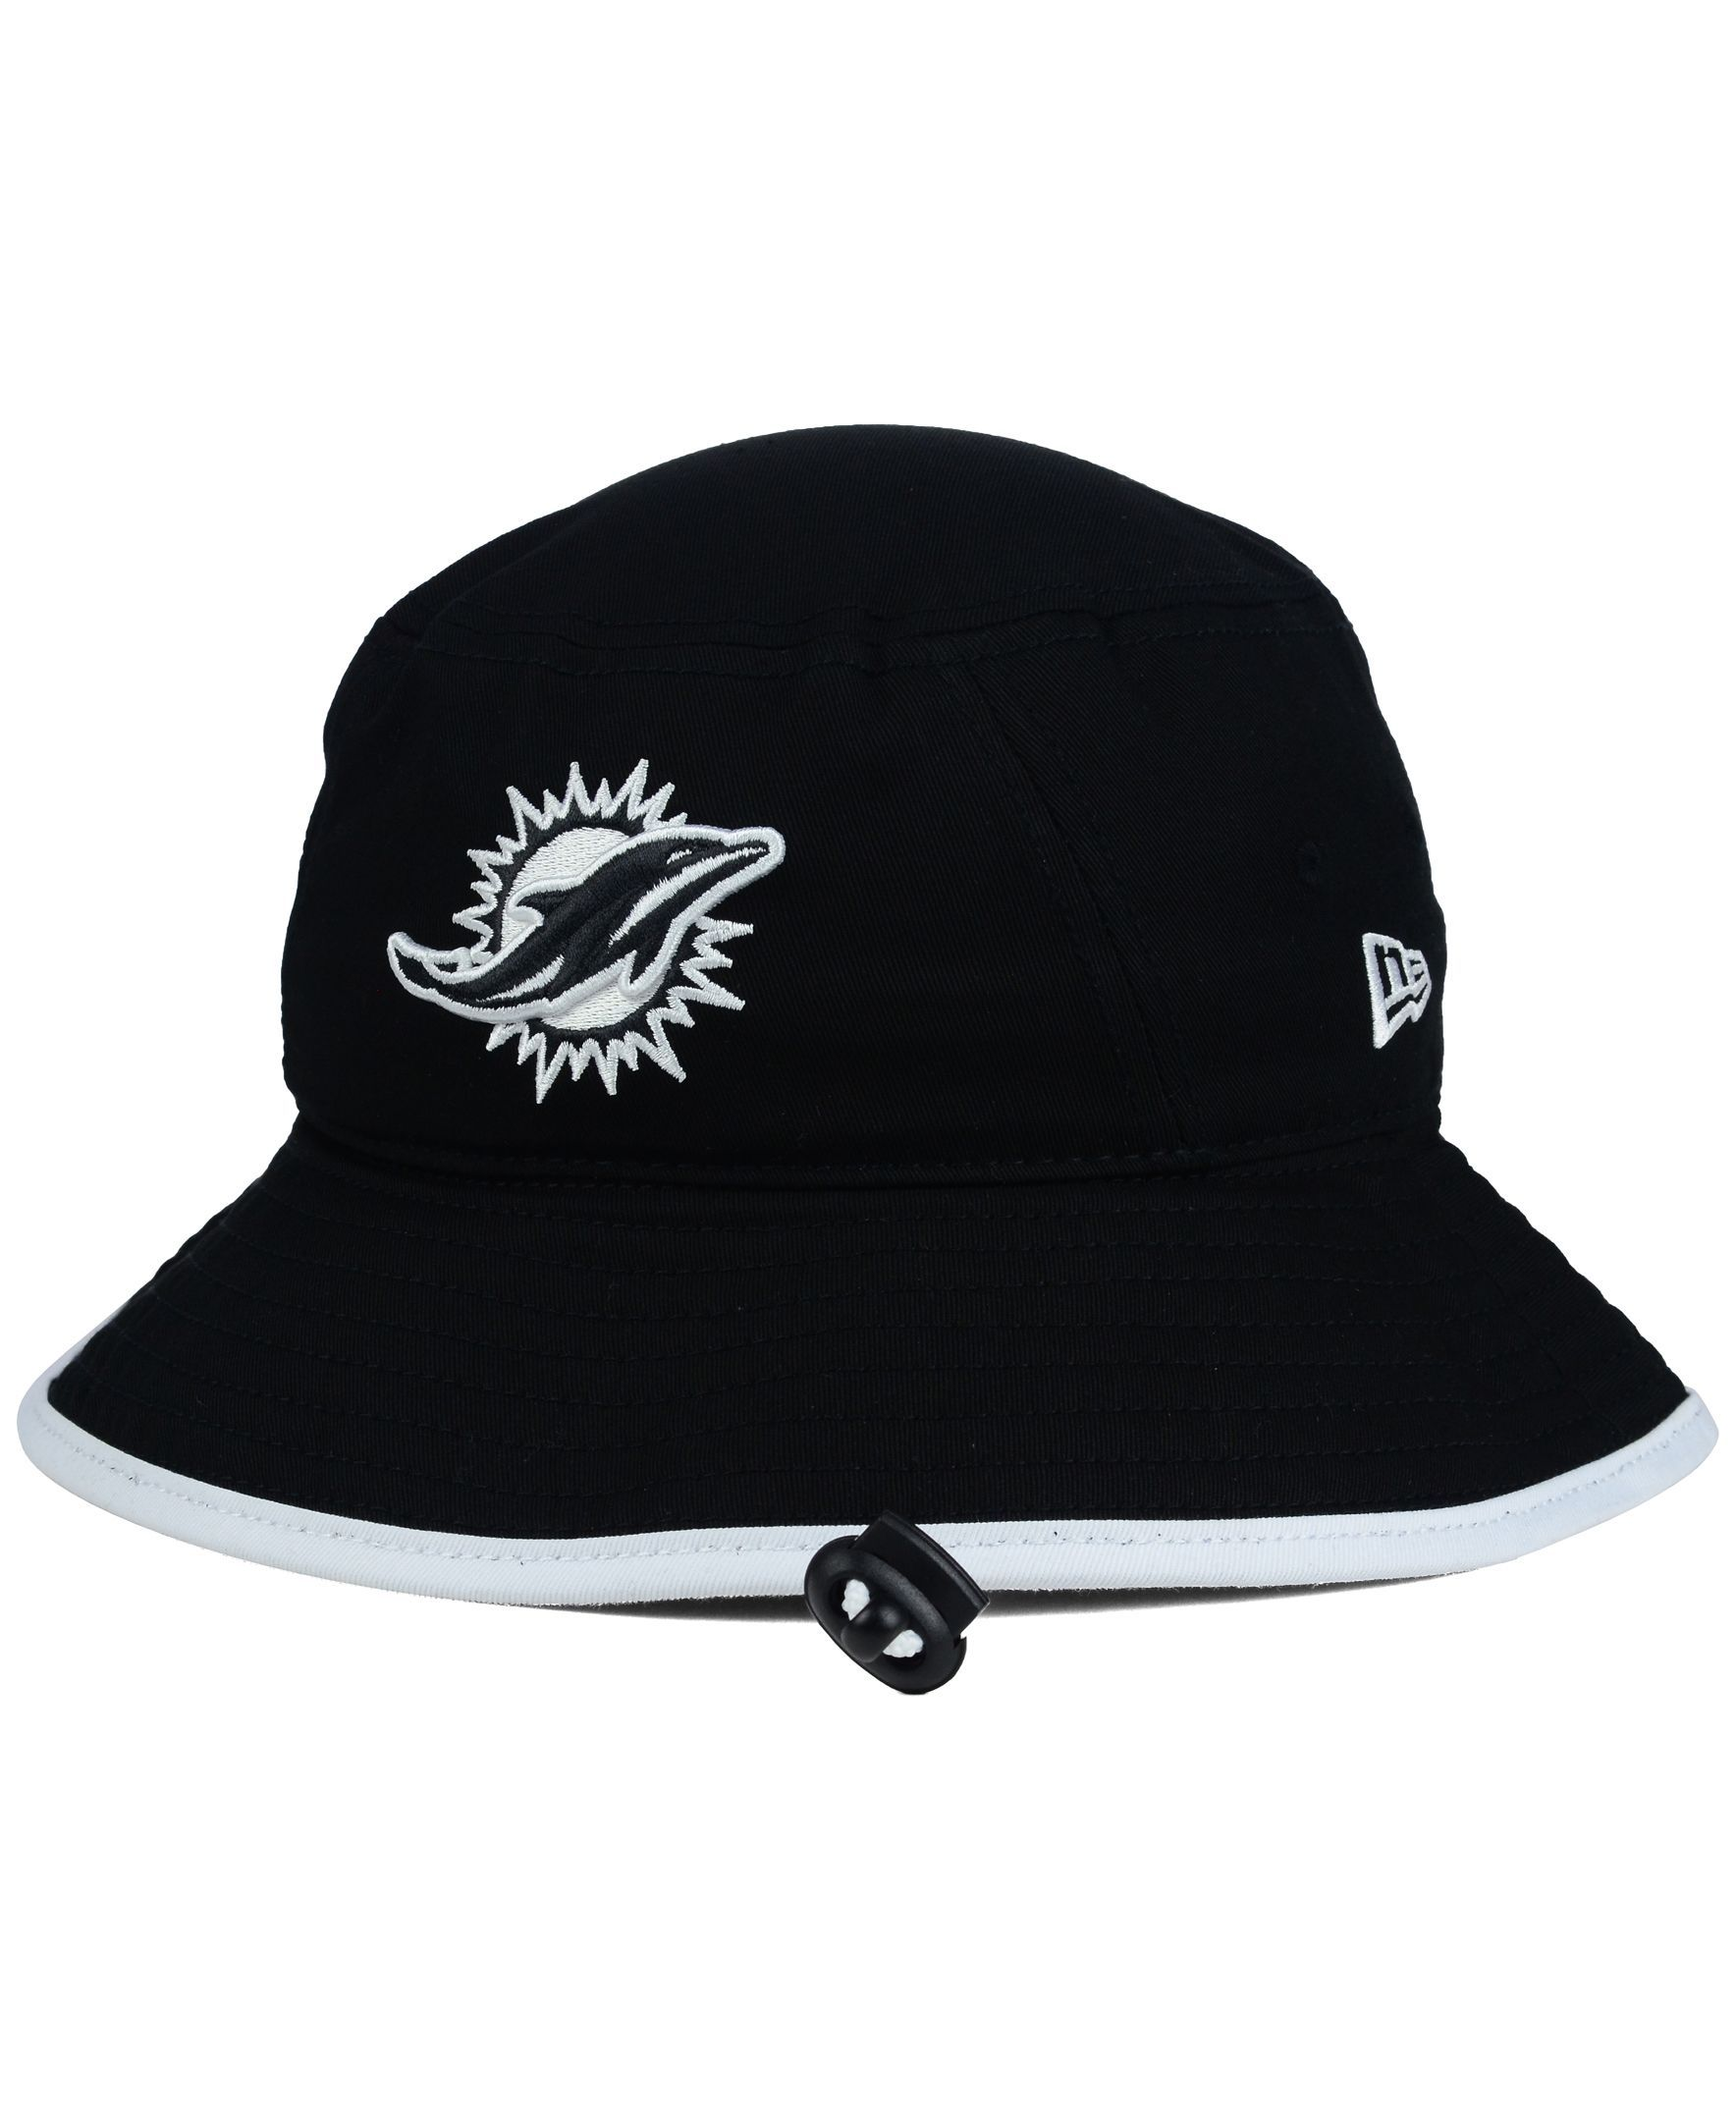 0344b307261 ... discount new era miami dolphins nfl black white bucket hat 3cfa4 b7292  ...